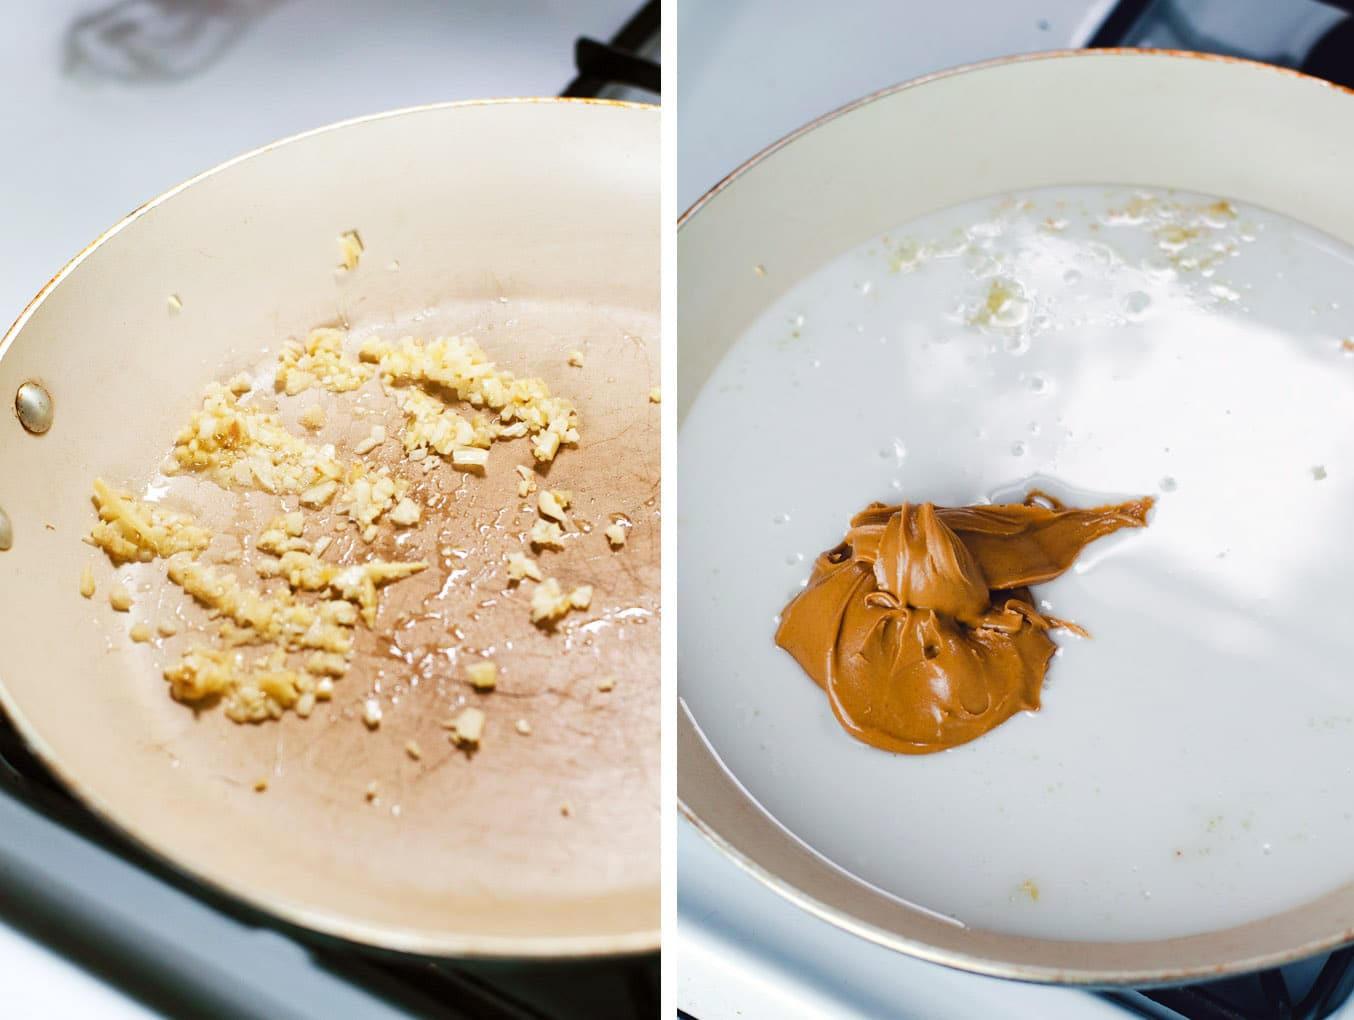 Left image shows ginger and garlic in a large frying pan. right image shows frying pan coated in white coconut milk with a scoop of peanut butter in the center.